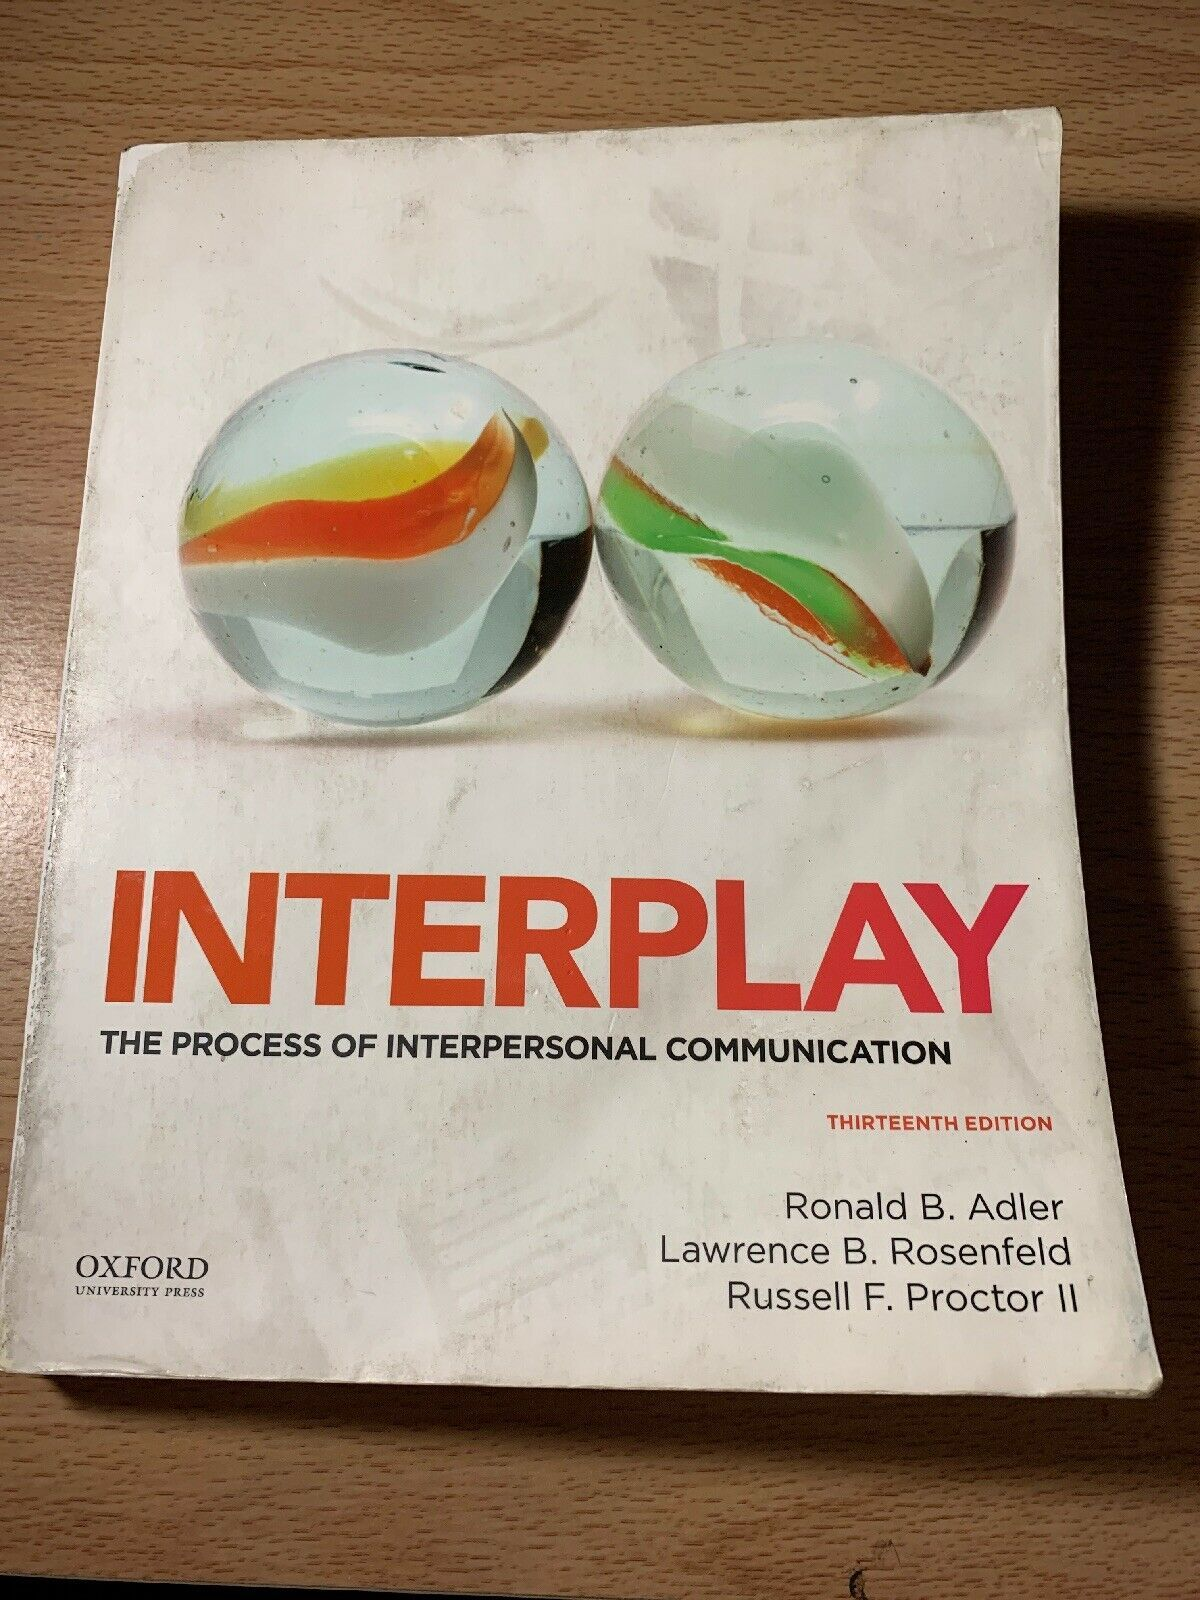 12 0 Interplay The Process Of Interpersonal